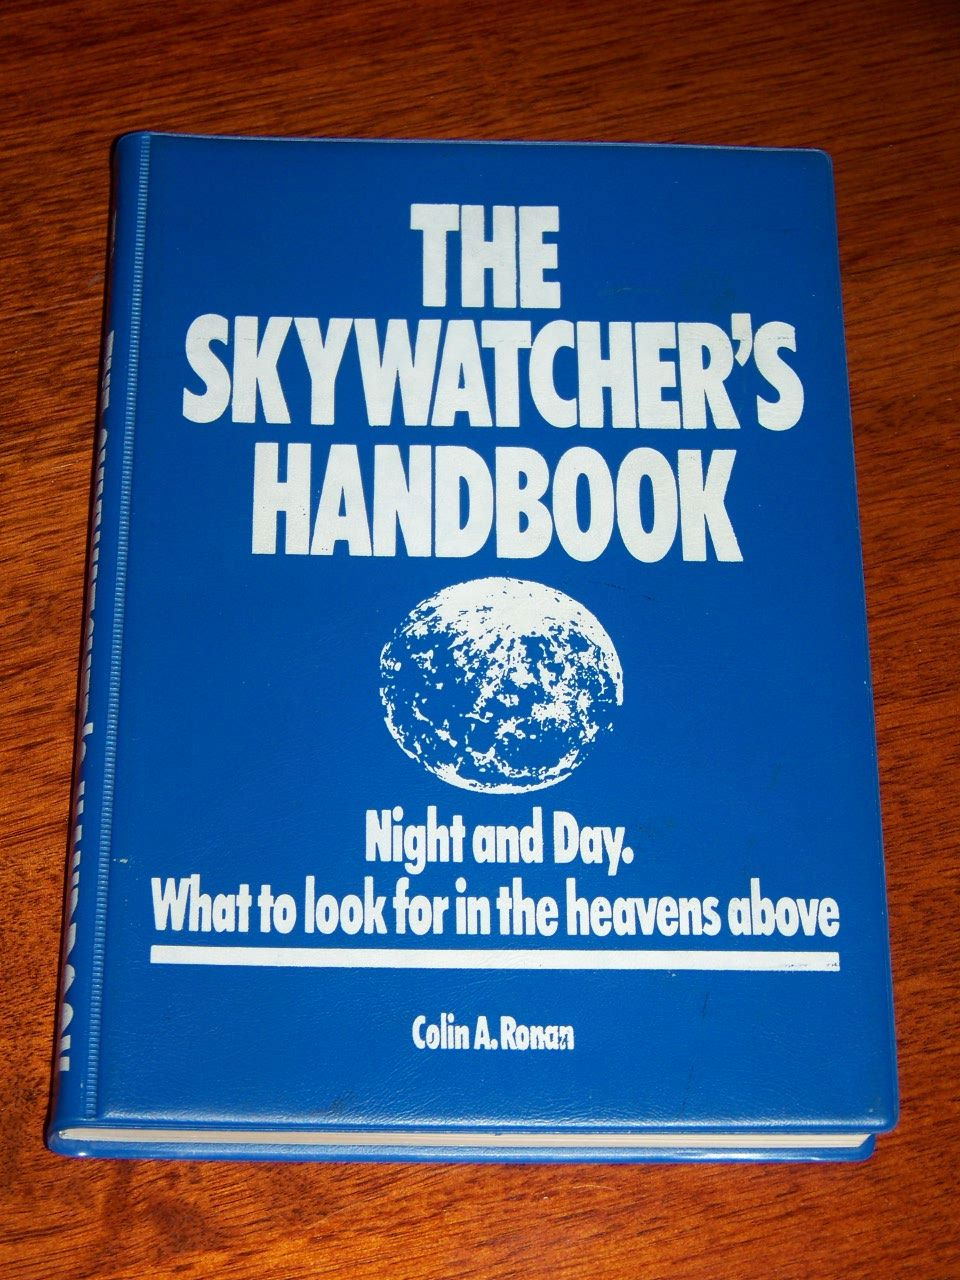 The-Skywatchers-Handbook-Colin-A-Ronin-SC